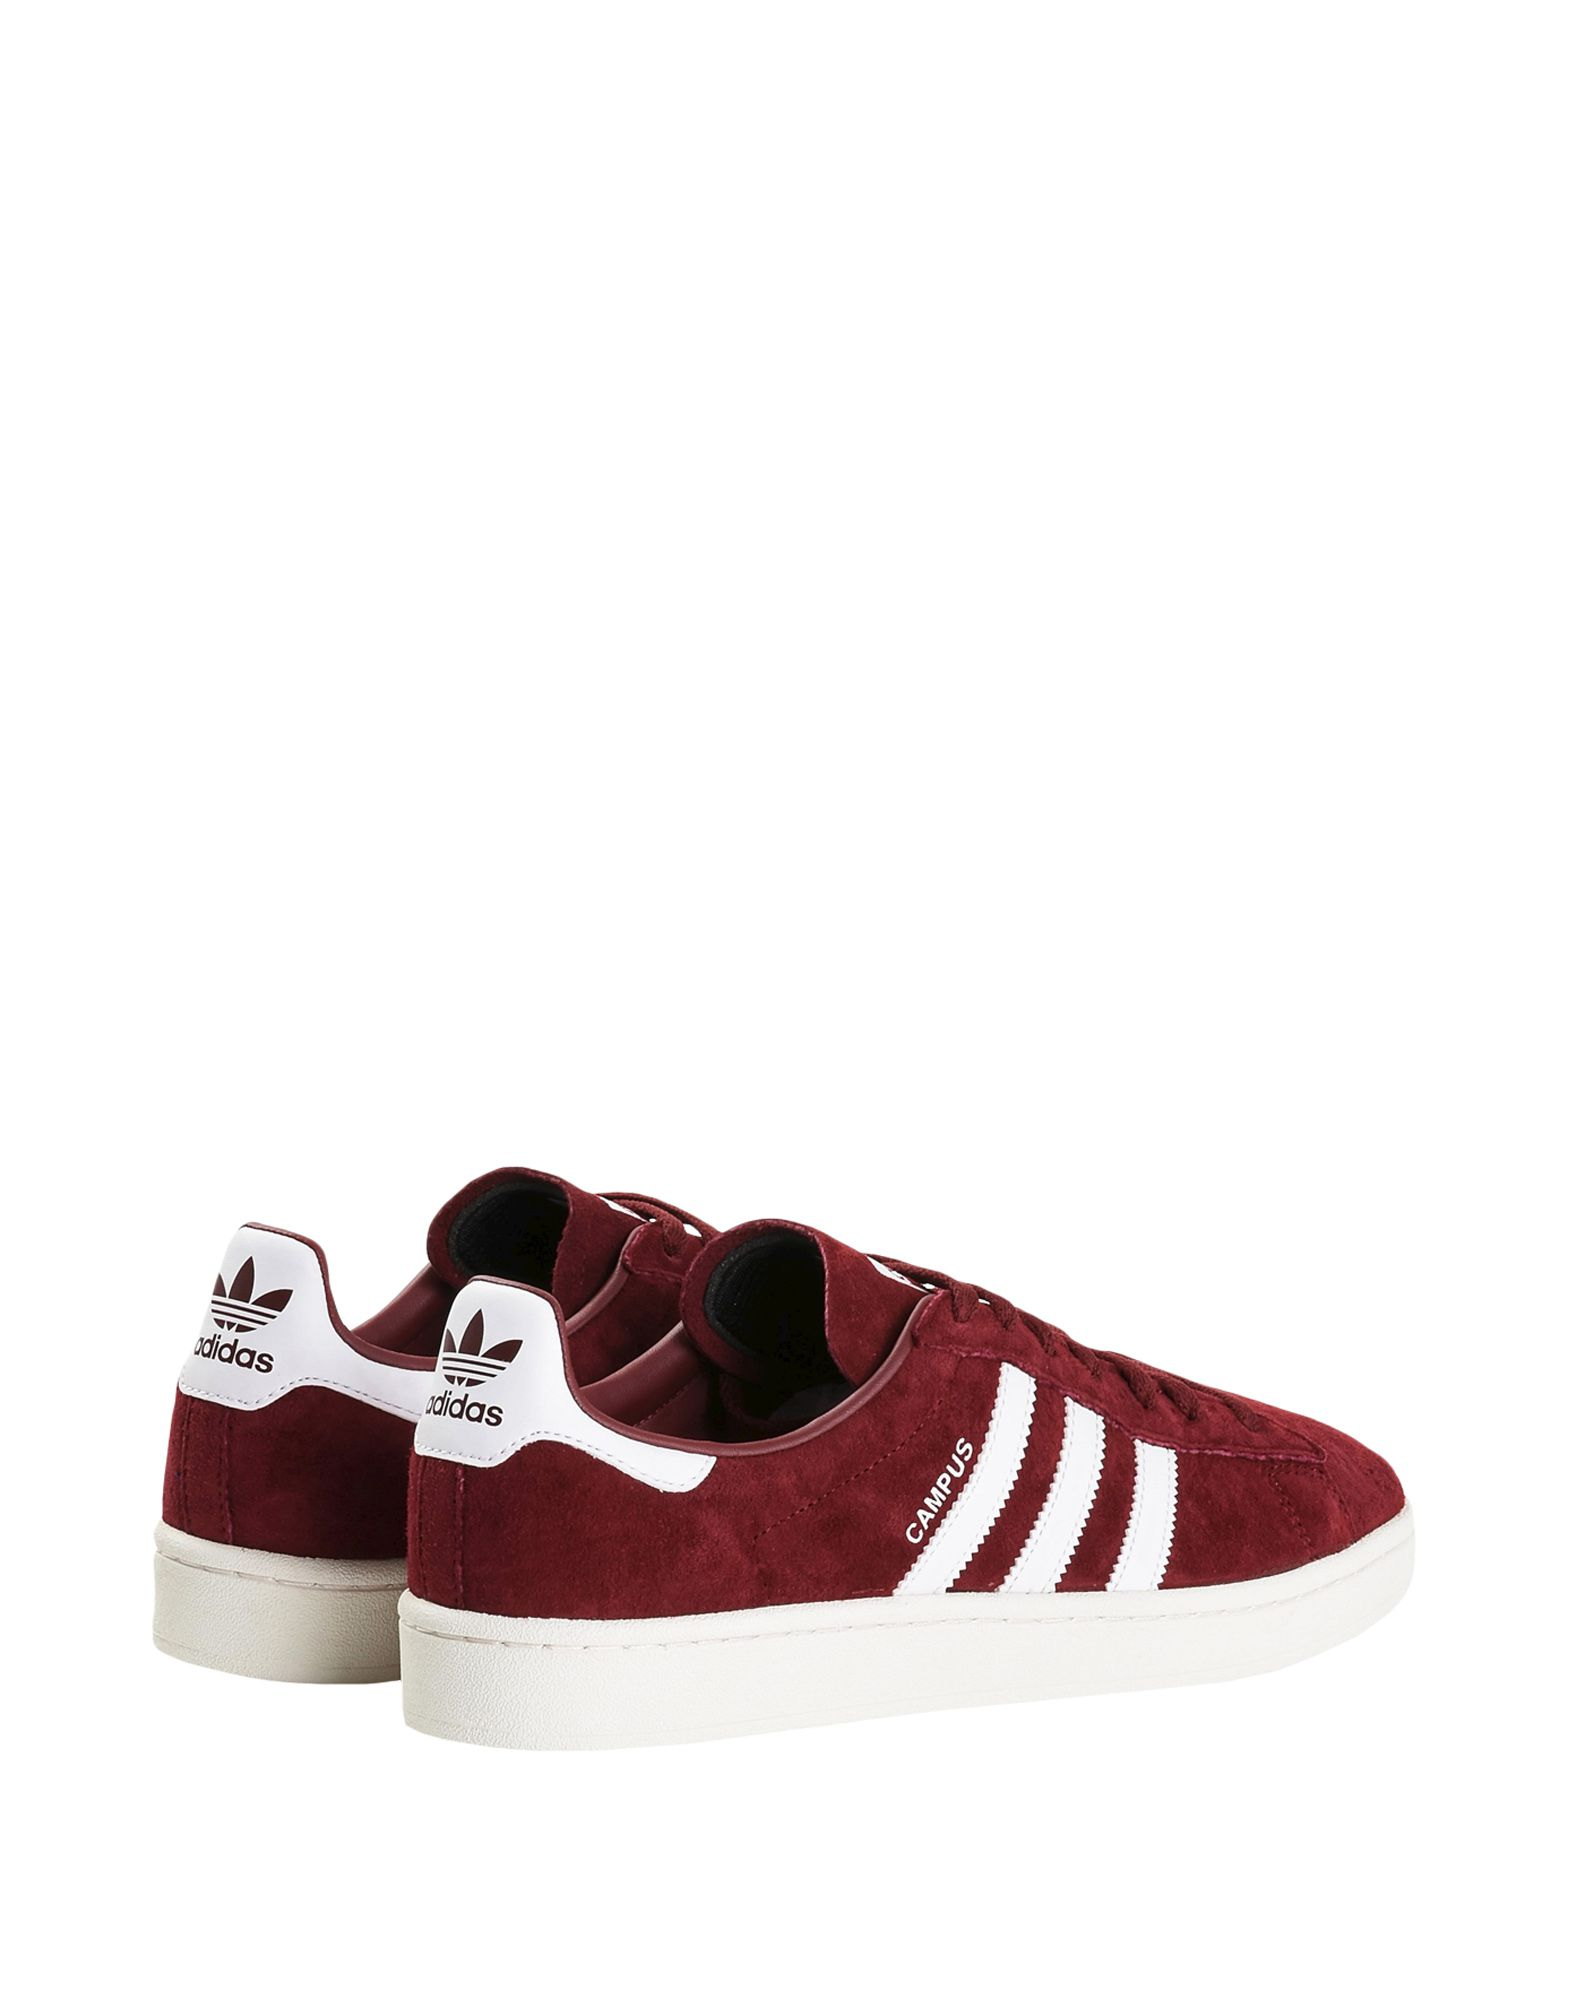 Sneakers Adidas Originals Campus - Homme - Sneakers Adidas Originals sur